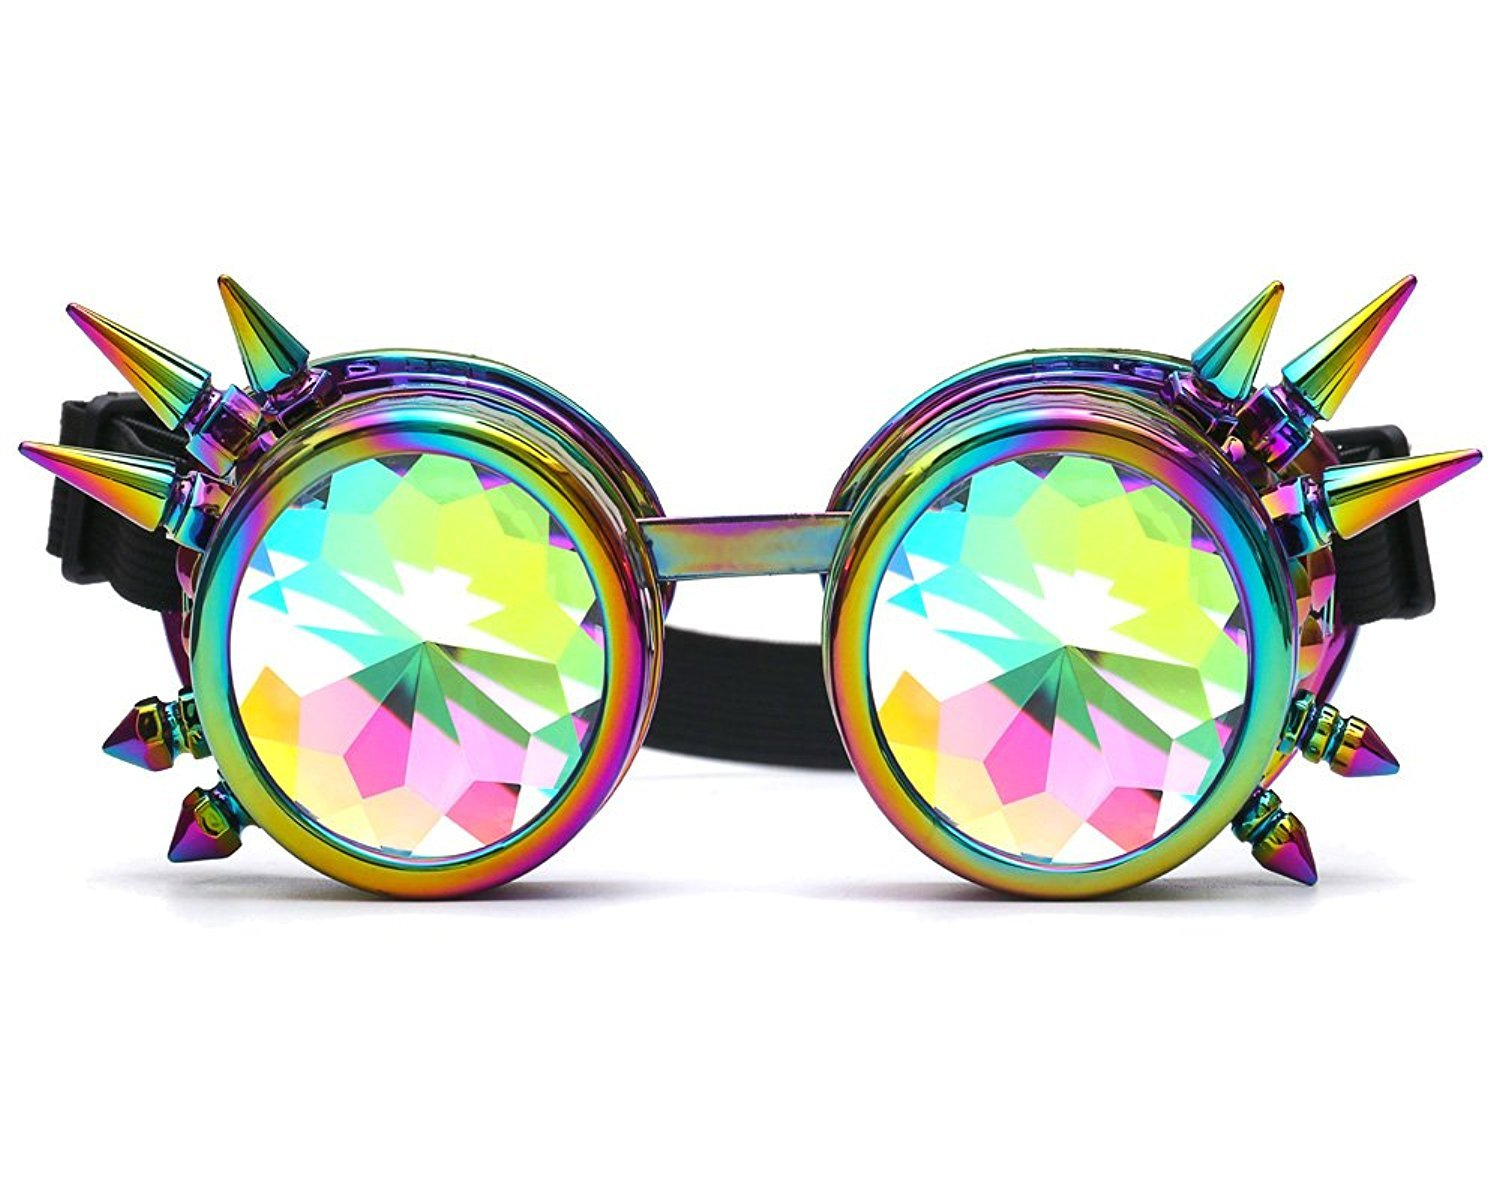 Winroor Kaleidoscope Rave Goggles Steampunk Glasses with Rainbow Crystal Glass Lens